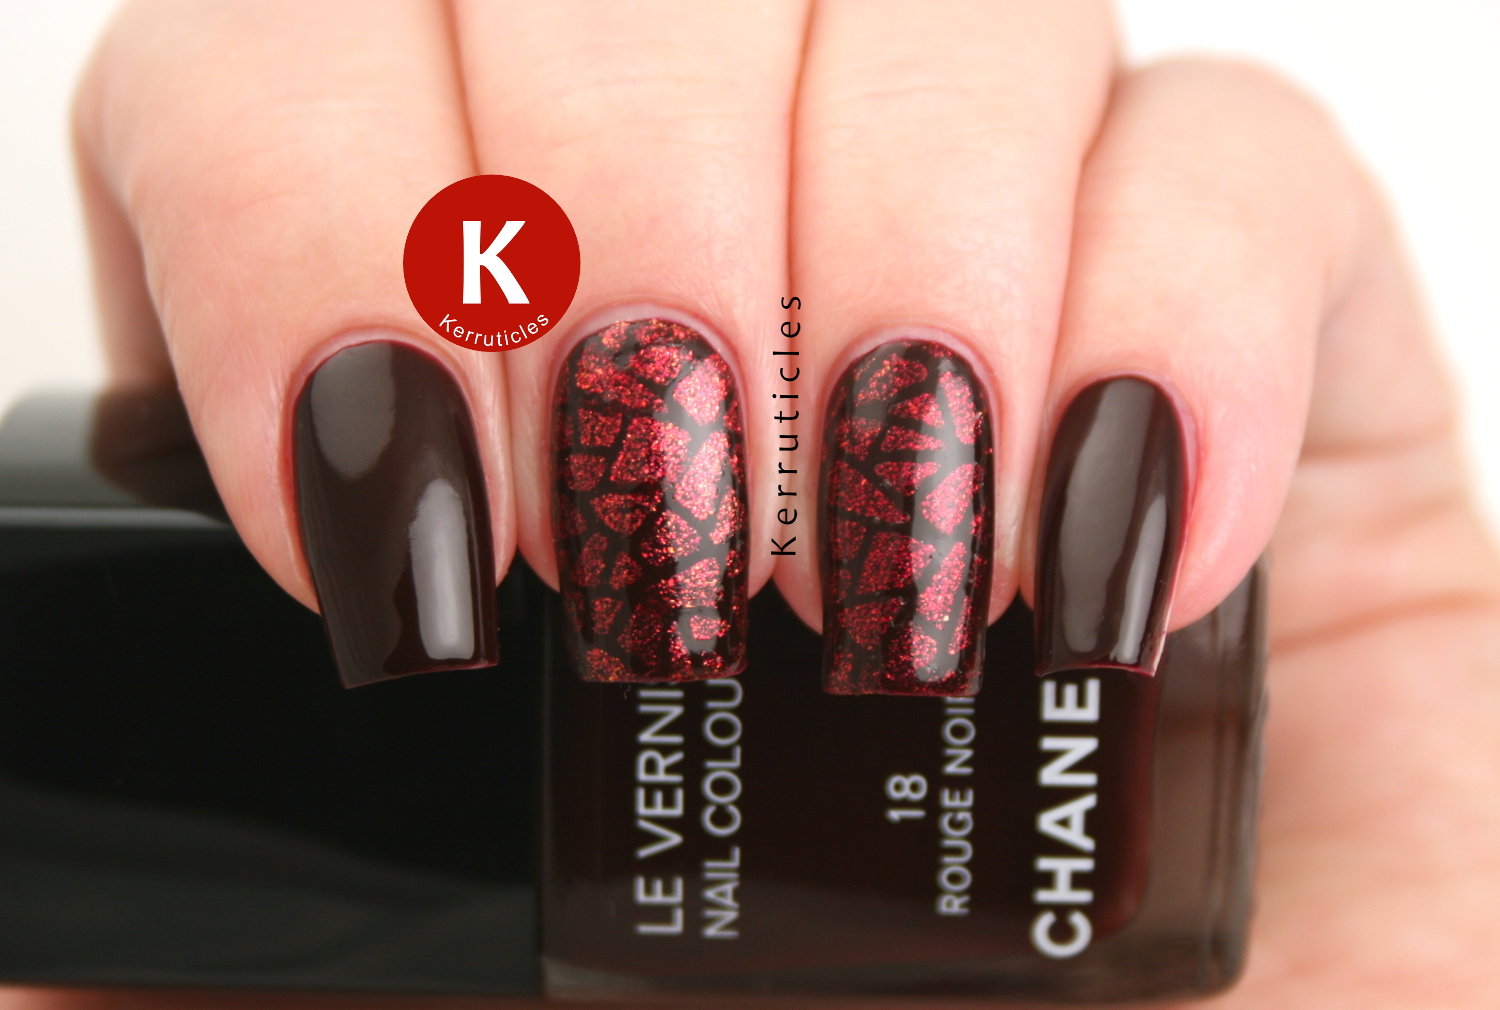 Red geometric nails, using Chanel Rouge Noir, and Barry M Sparkling Ruby sponged over Bundle Monster stencils